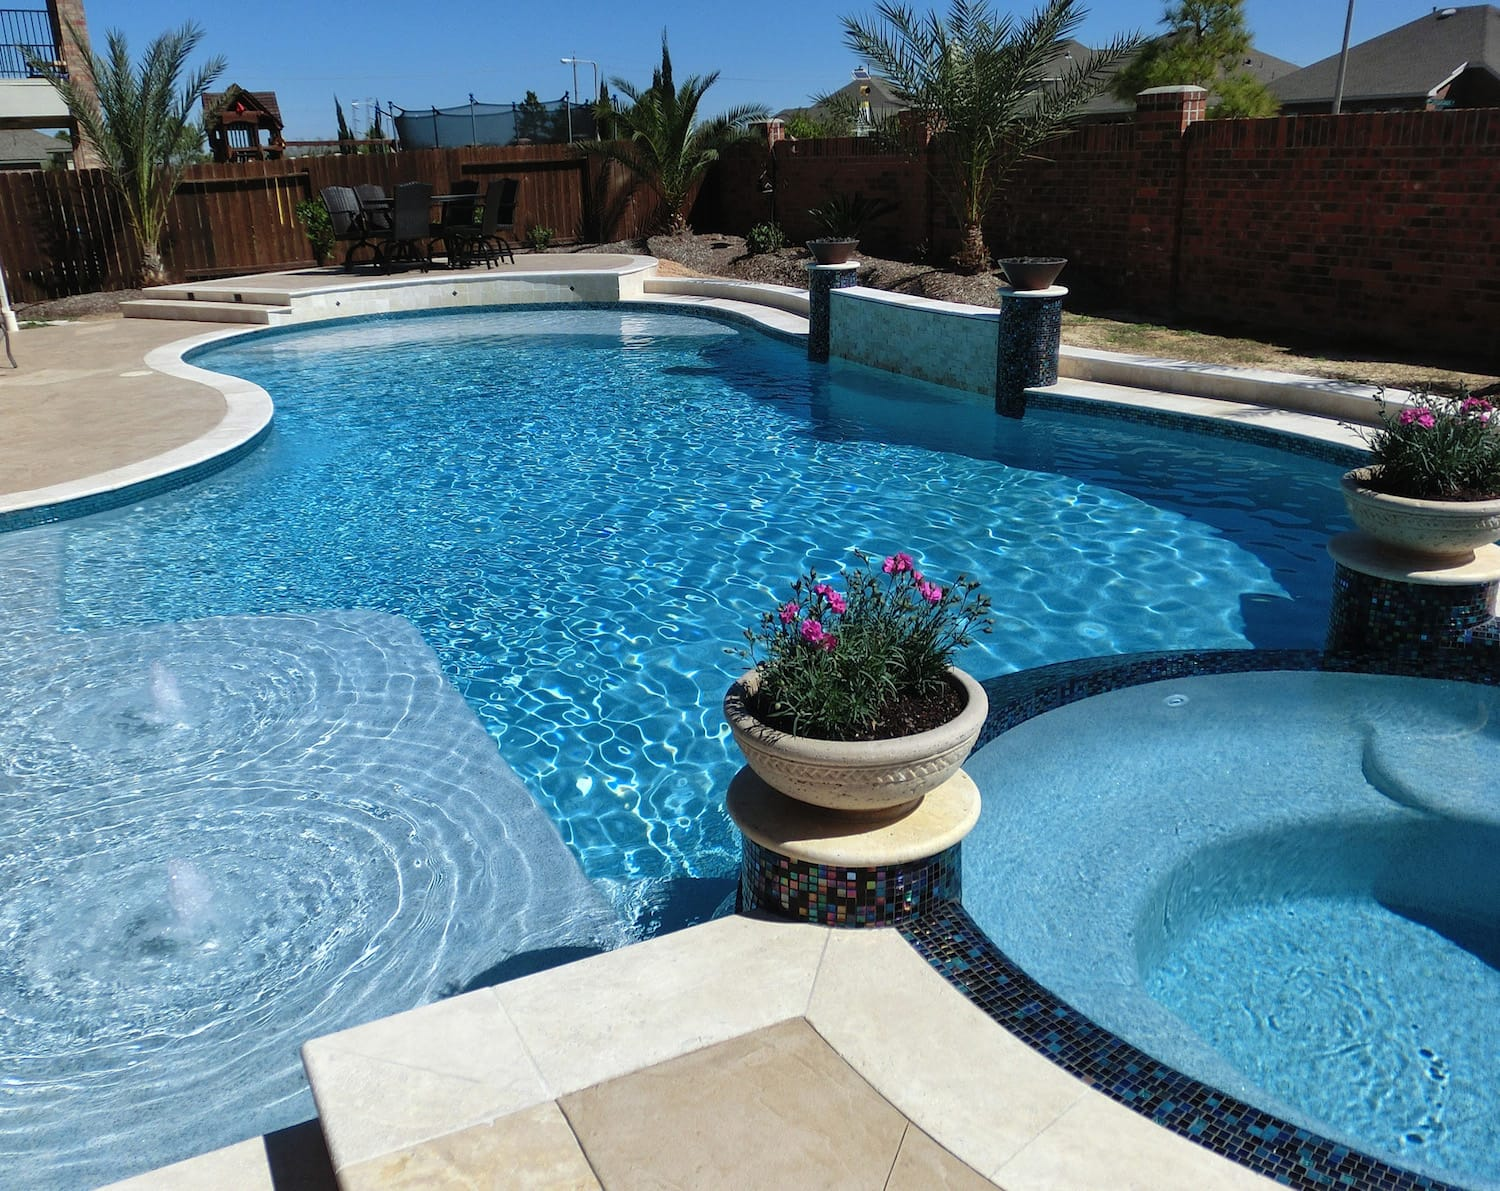 Pool Plaster Mix : Wet edge products azure treasure